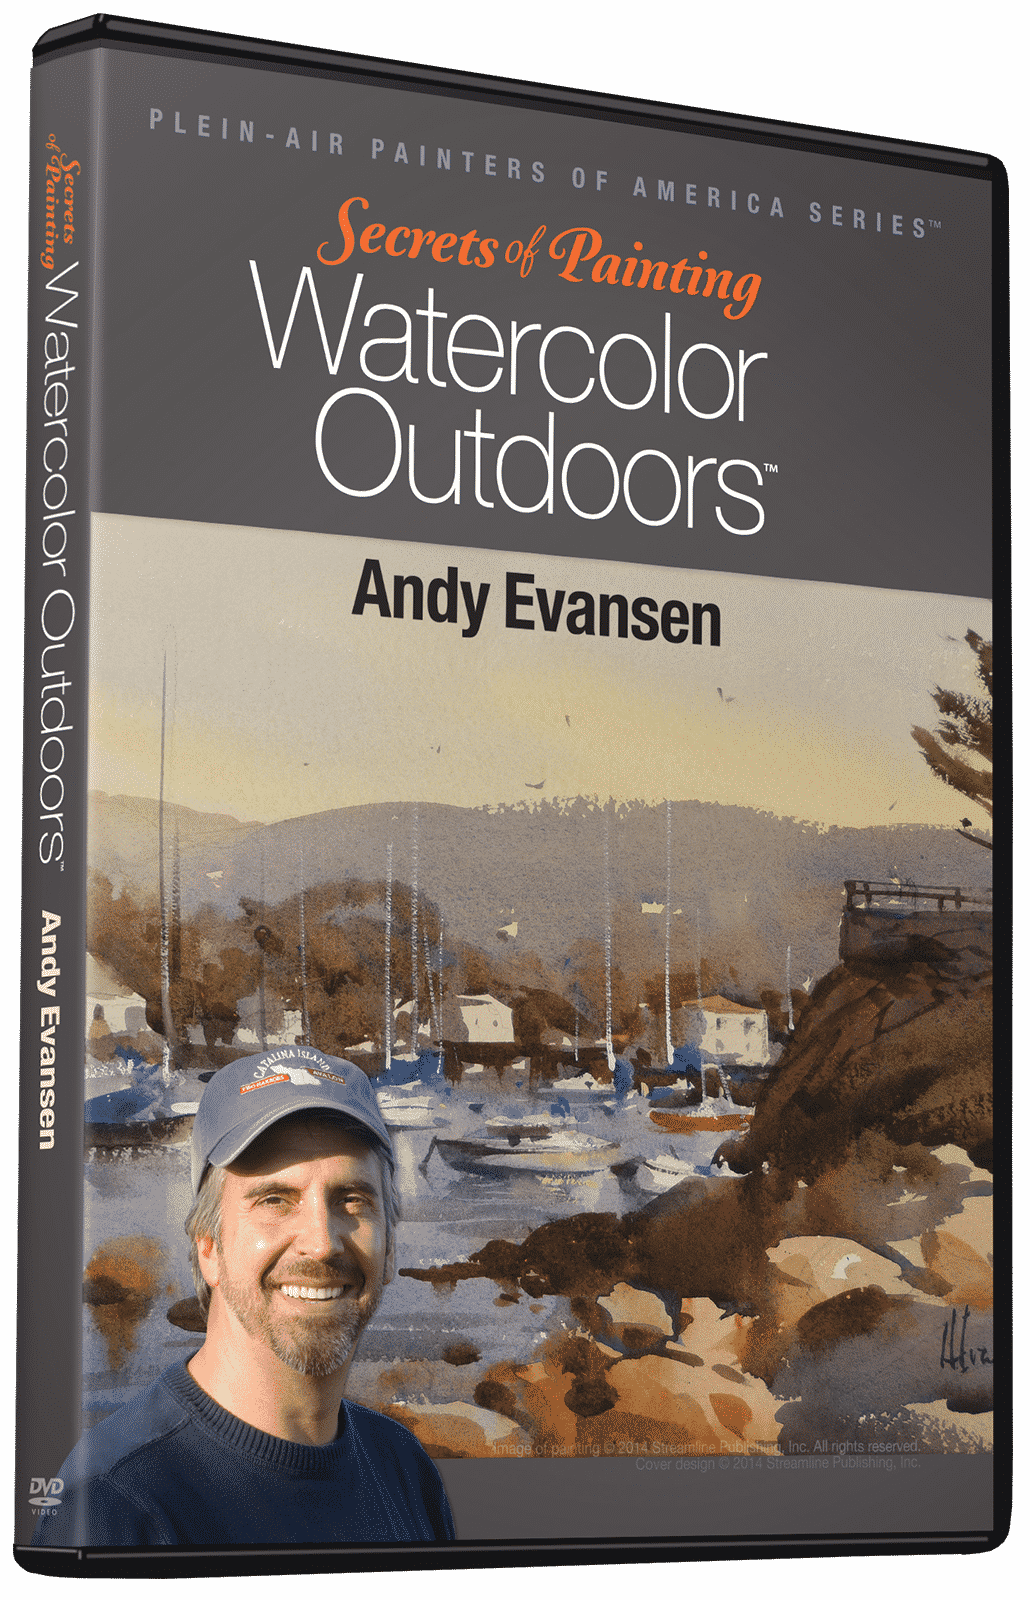 Andy Evansen: Secrets of Painting Watercolor Outdoors